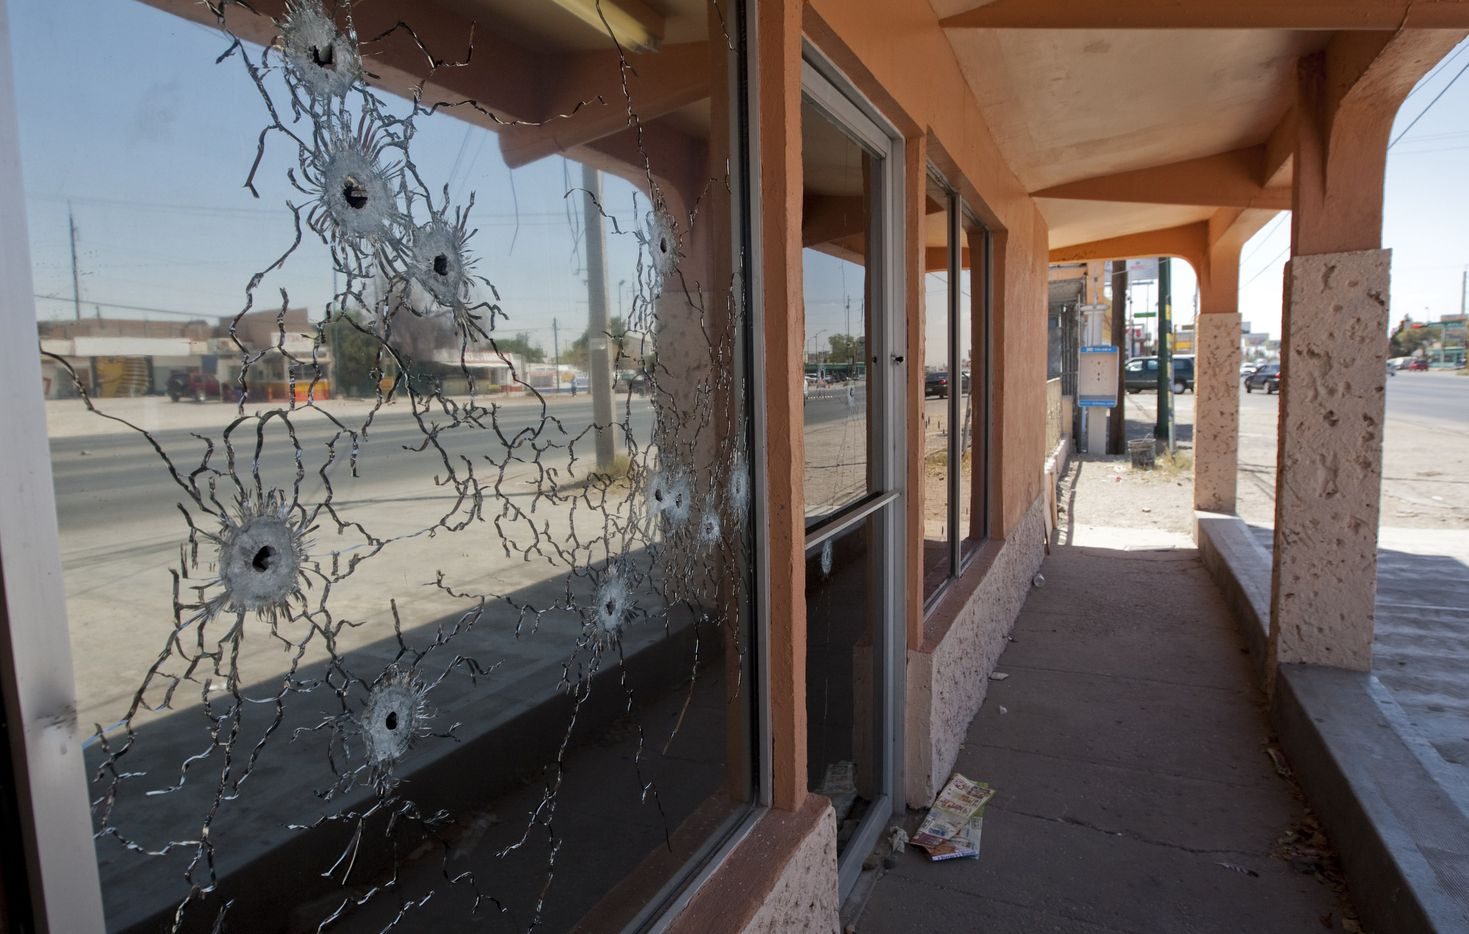 Bullet holes on a window of funeral parlor, one of many businesses that were burned down for not paying a monthly tax charged by criminal gangs to thousands of local businesses in Ciudad Juarez, Mexico, on July 6, 2011.